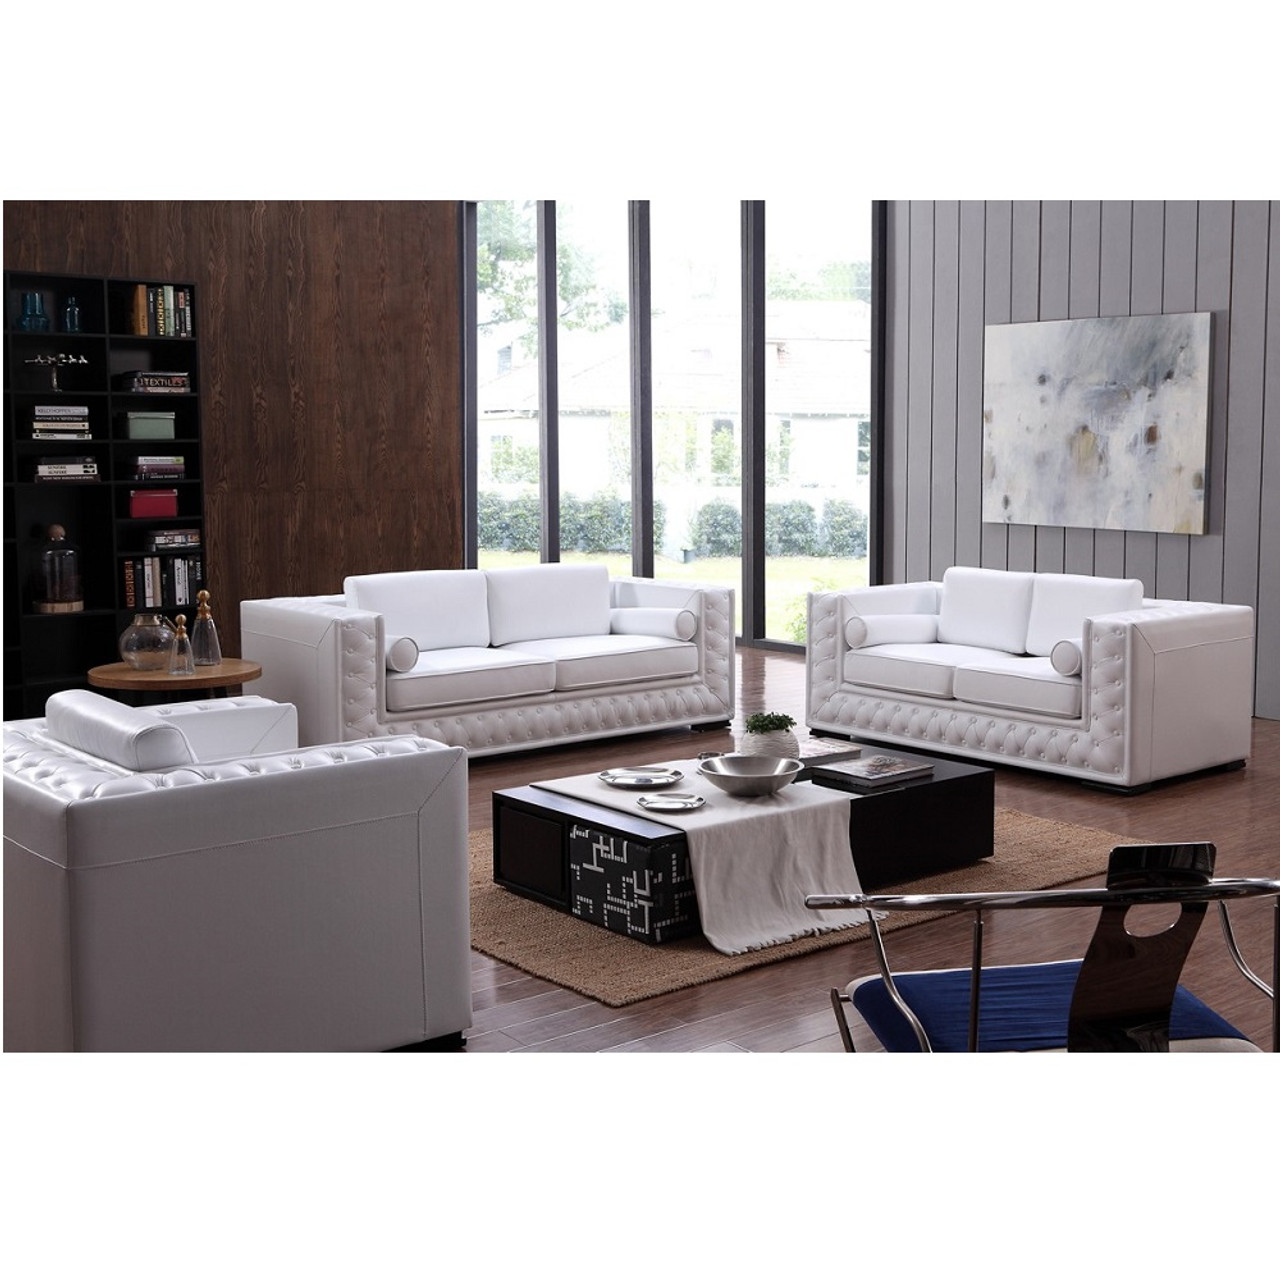 Pleasant Divani Casa Dublin Modern White Leather Sofa Set W Buttons Ocoug Best Dining Table And Chair Ideas Images Ocougorg